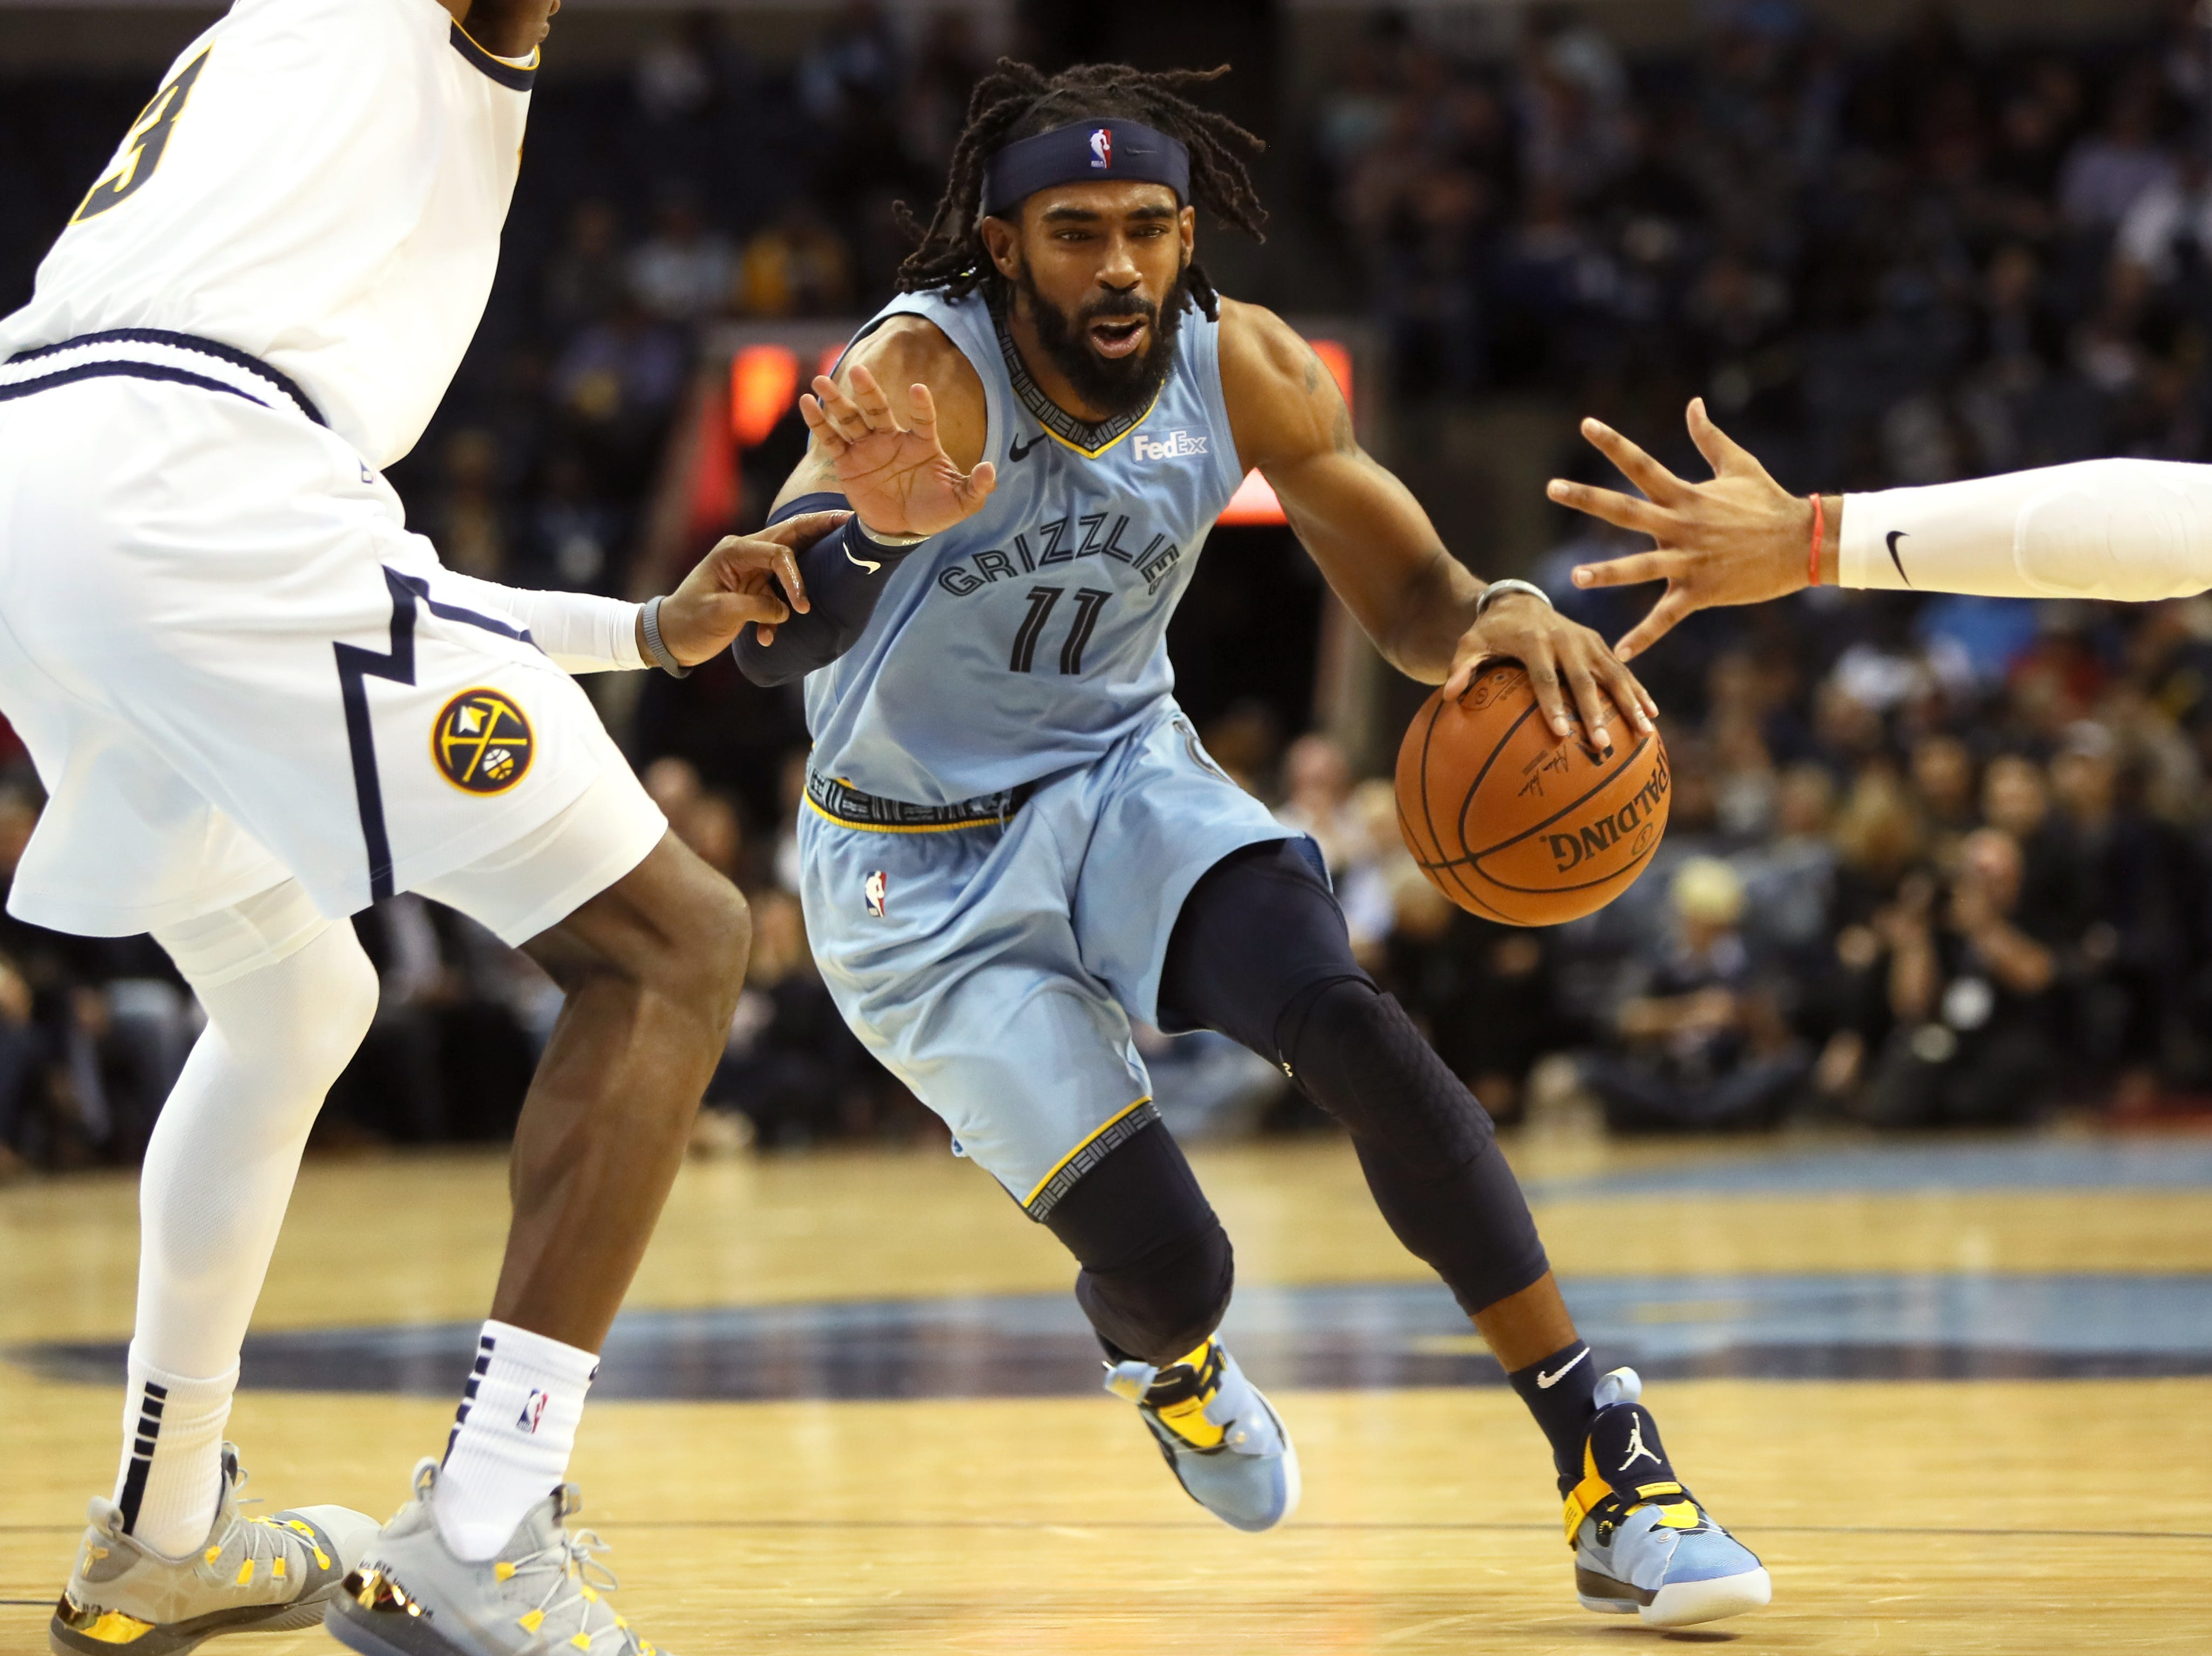 Memphis Grizzlies guard Mike Conley splits the defenders to drive in to the lane against the Denver Nuggets during their game at the FedExForum on Wednesday, November 7, 2018.